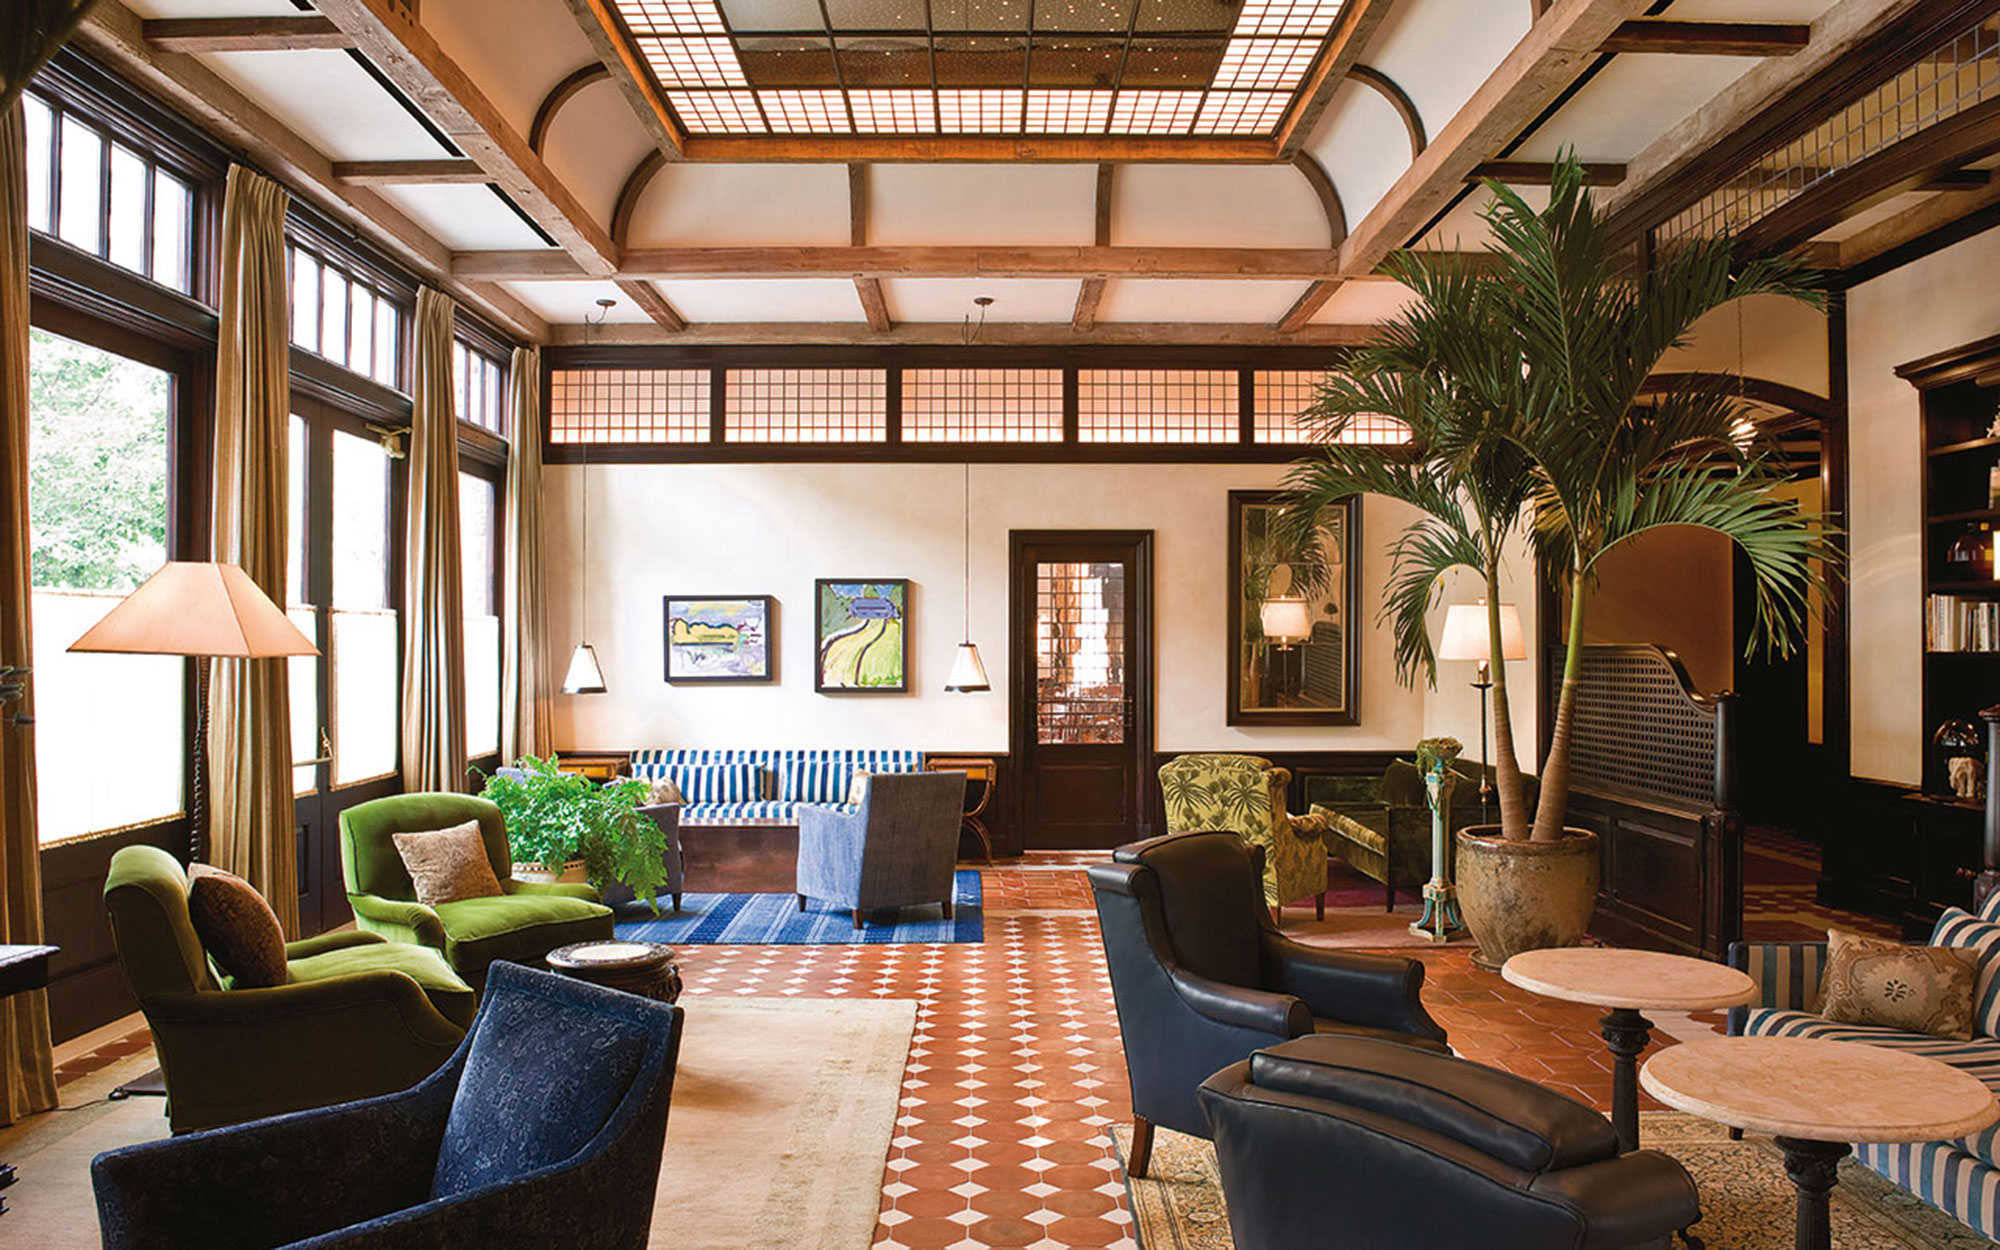 No. 4: Greenwich Hotel, New York City